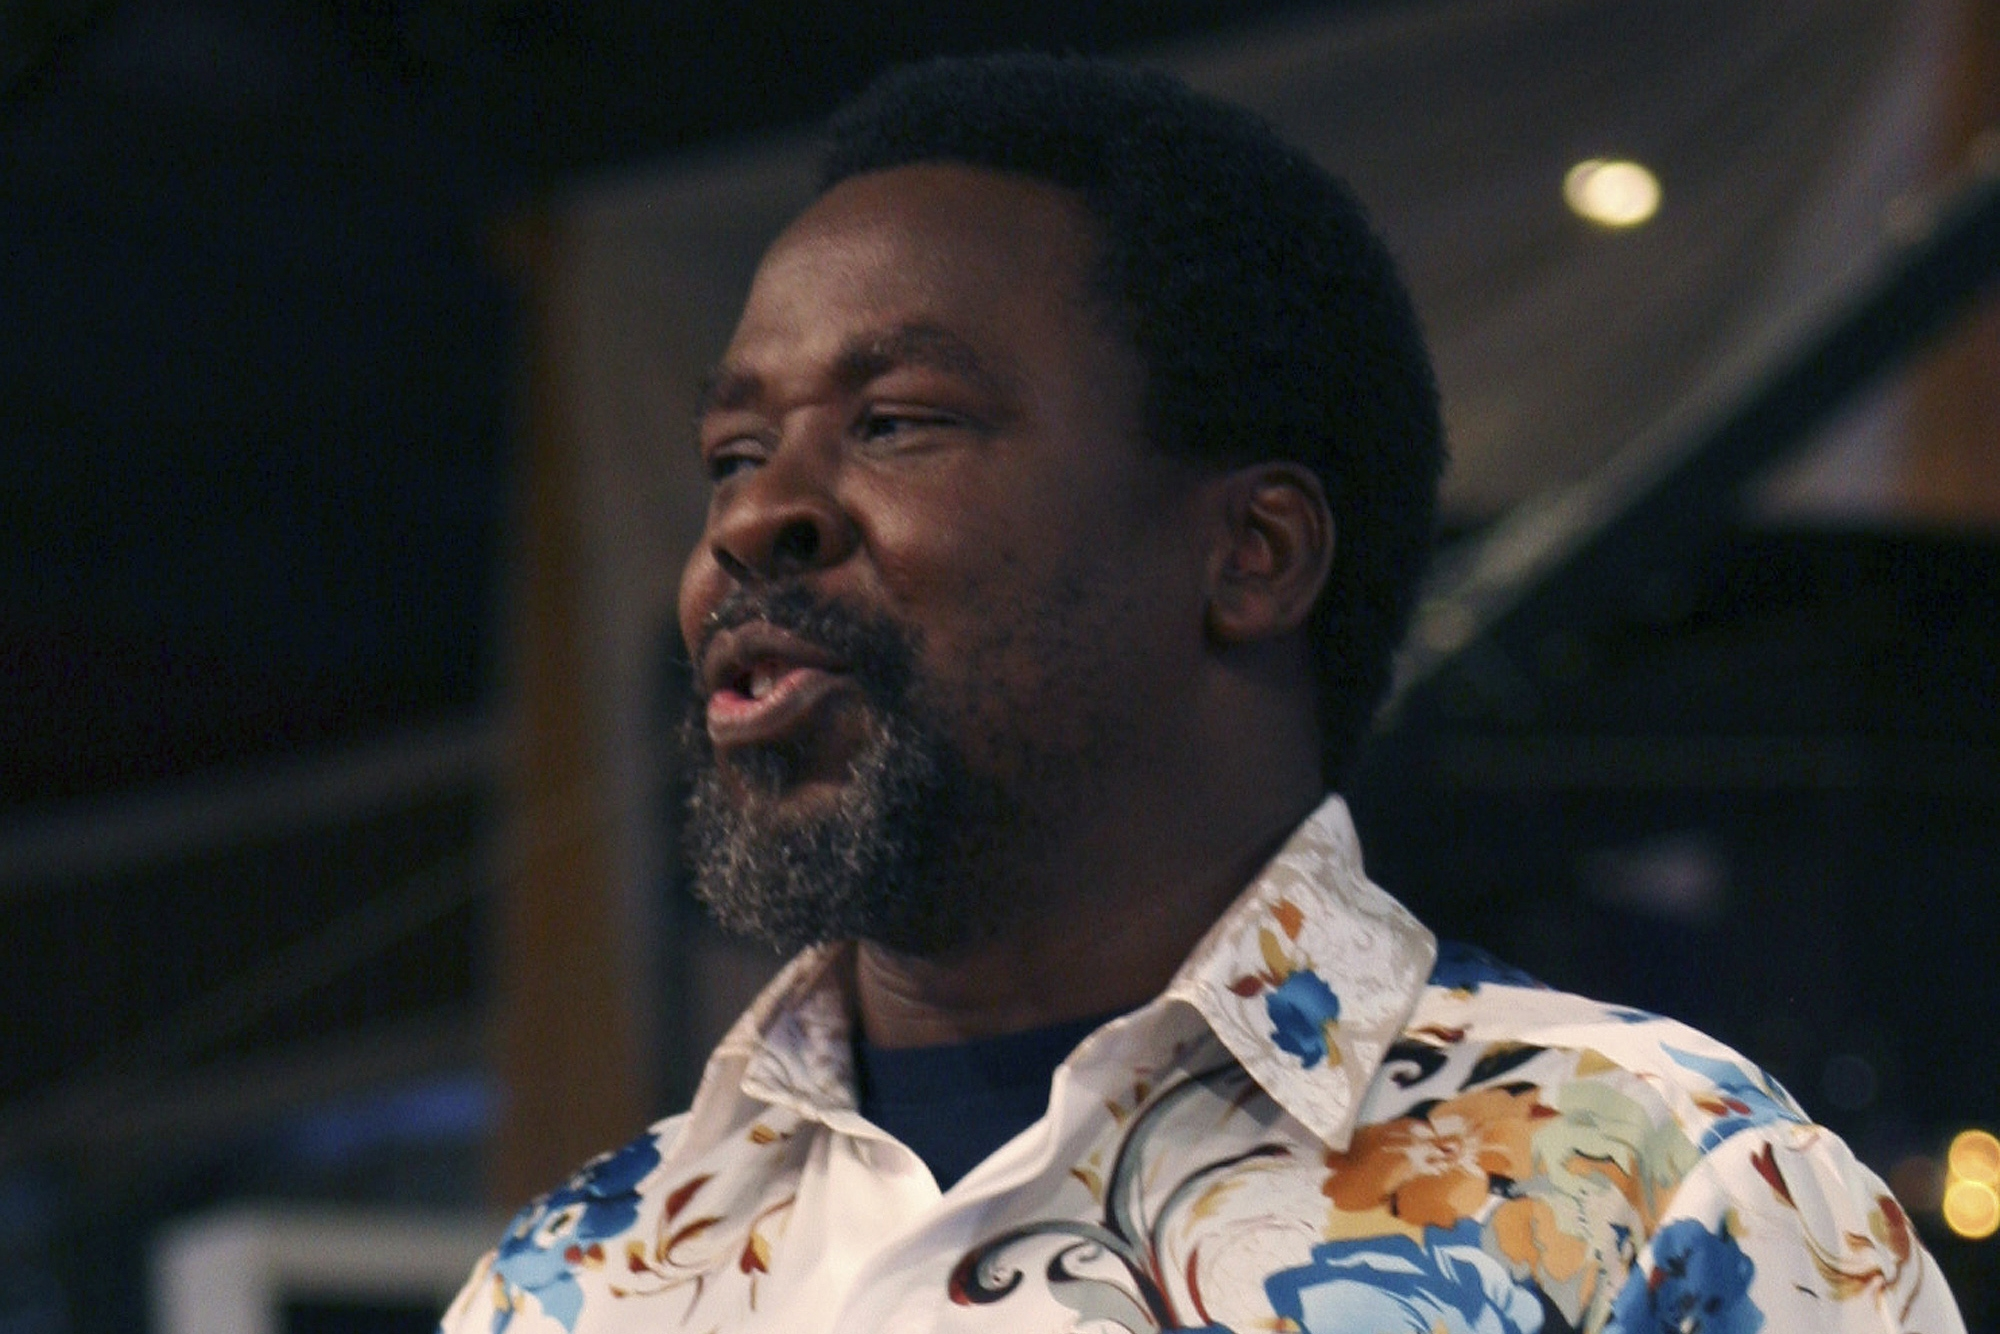 T.B. Joshua conducts a service at the Synagogue Church of All Nations in Lagos, Nigeria.